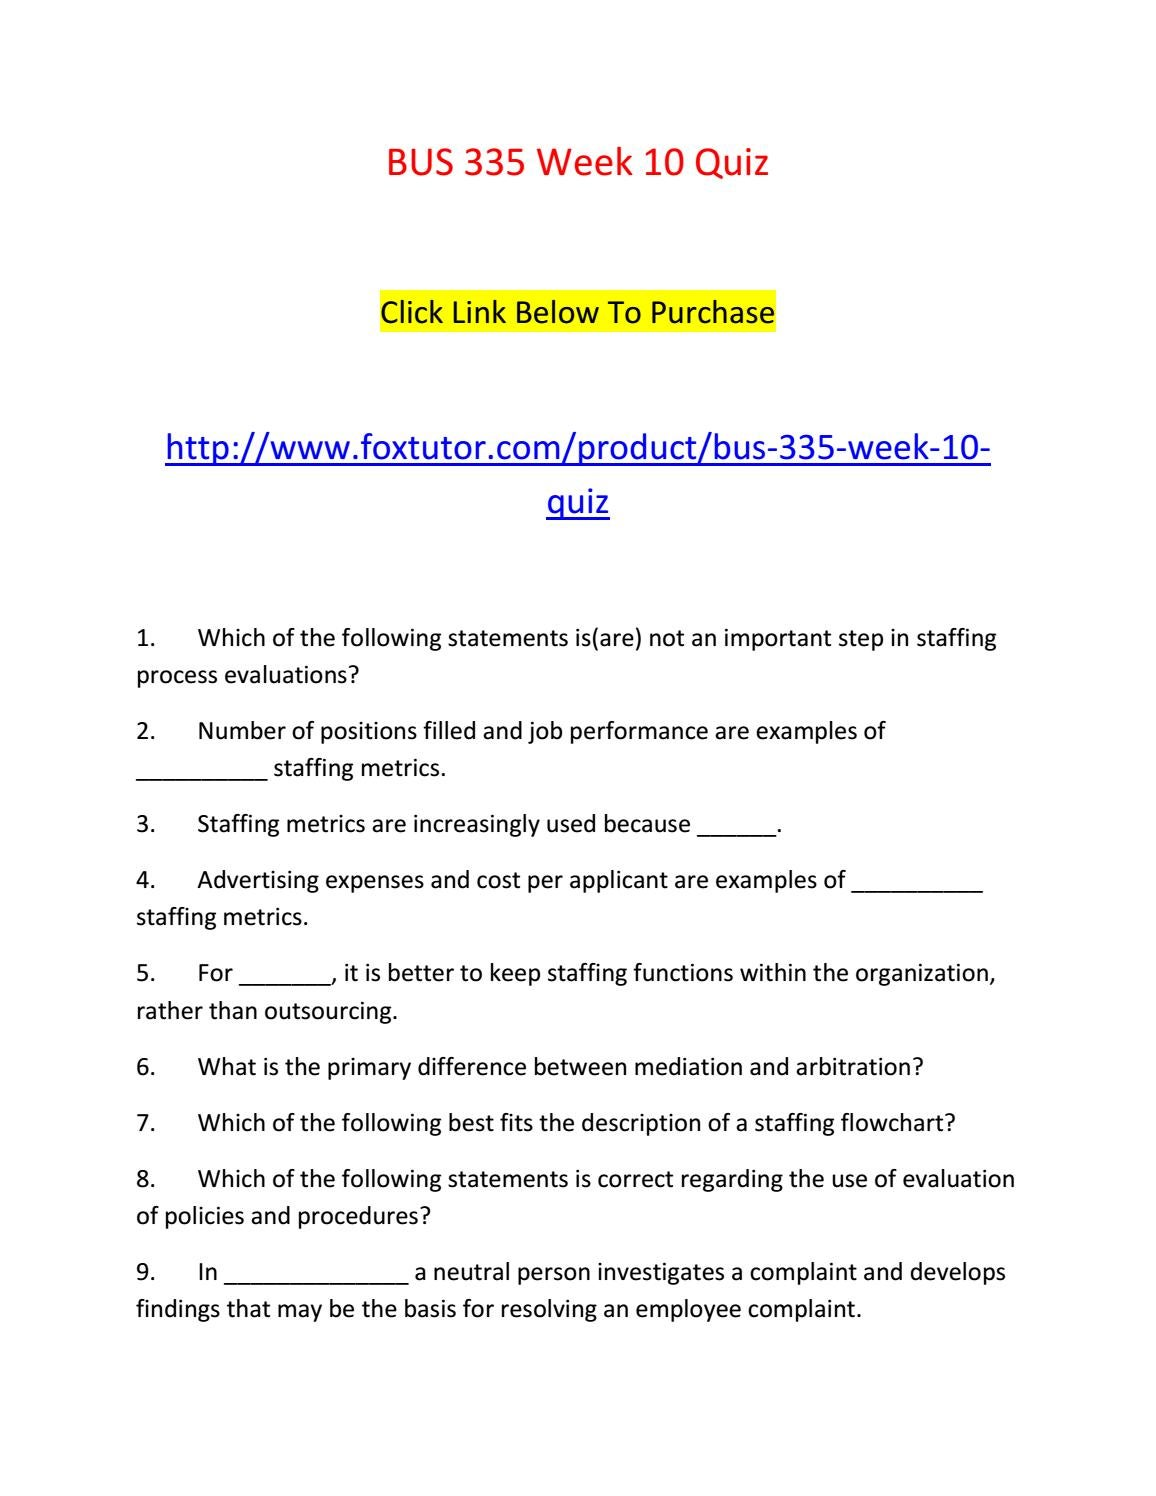 bus 335 week 10 quiz by bus335ft issuu - Staffing Flowchart